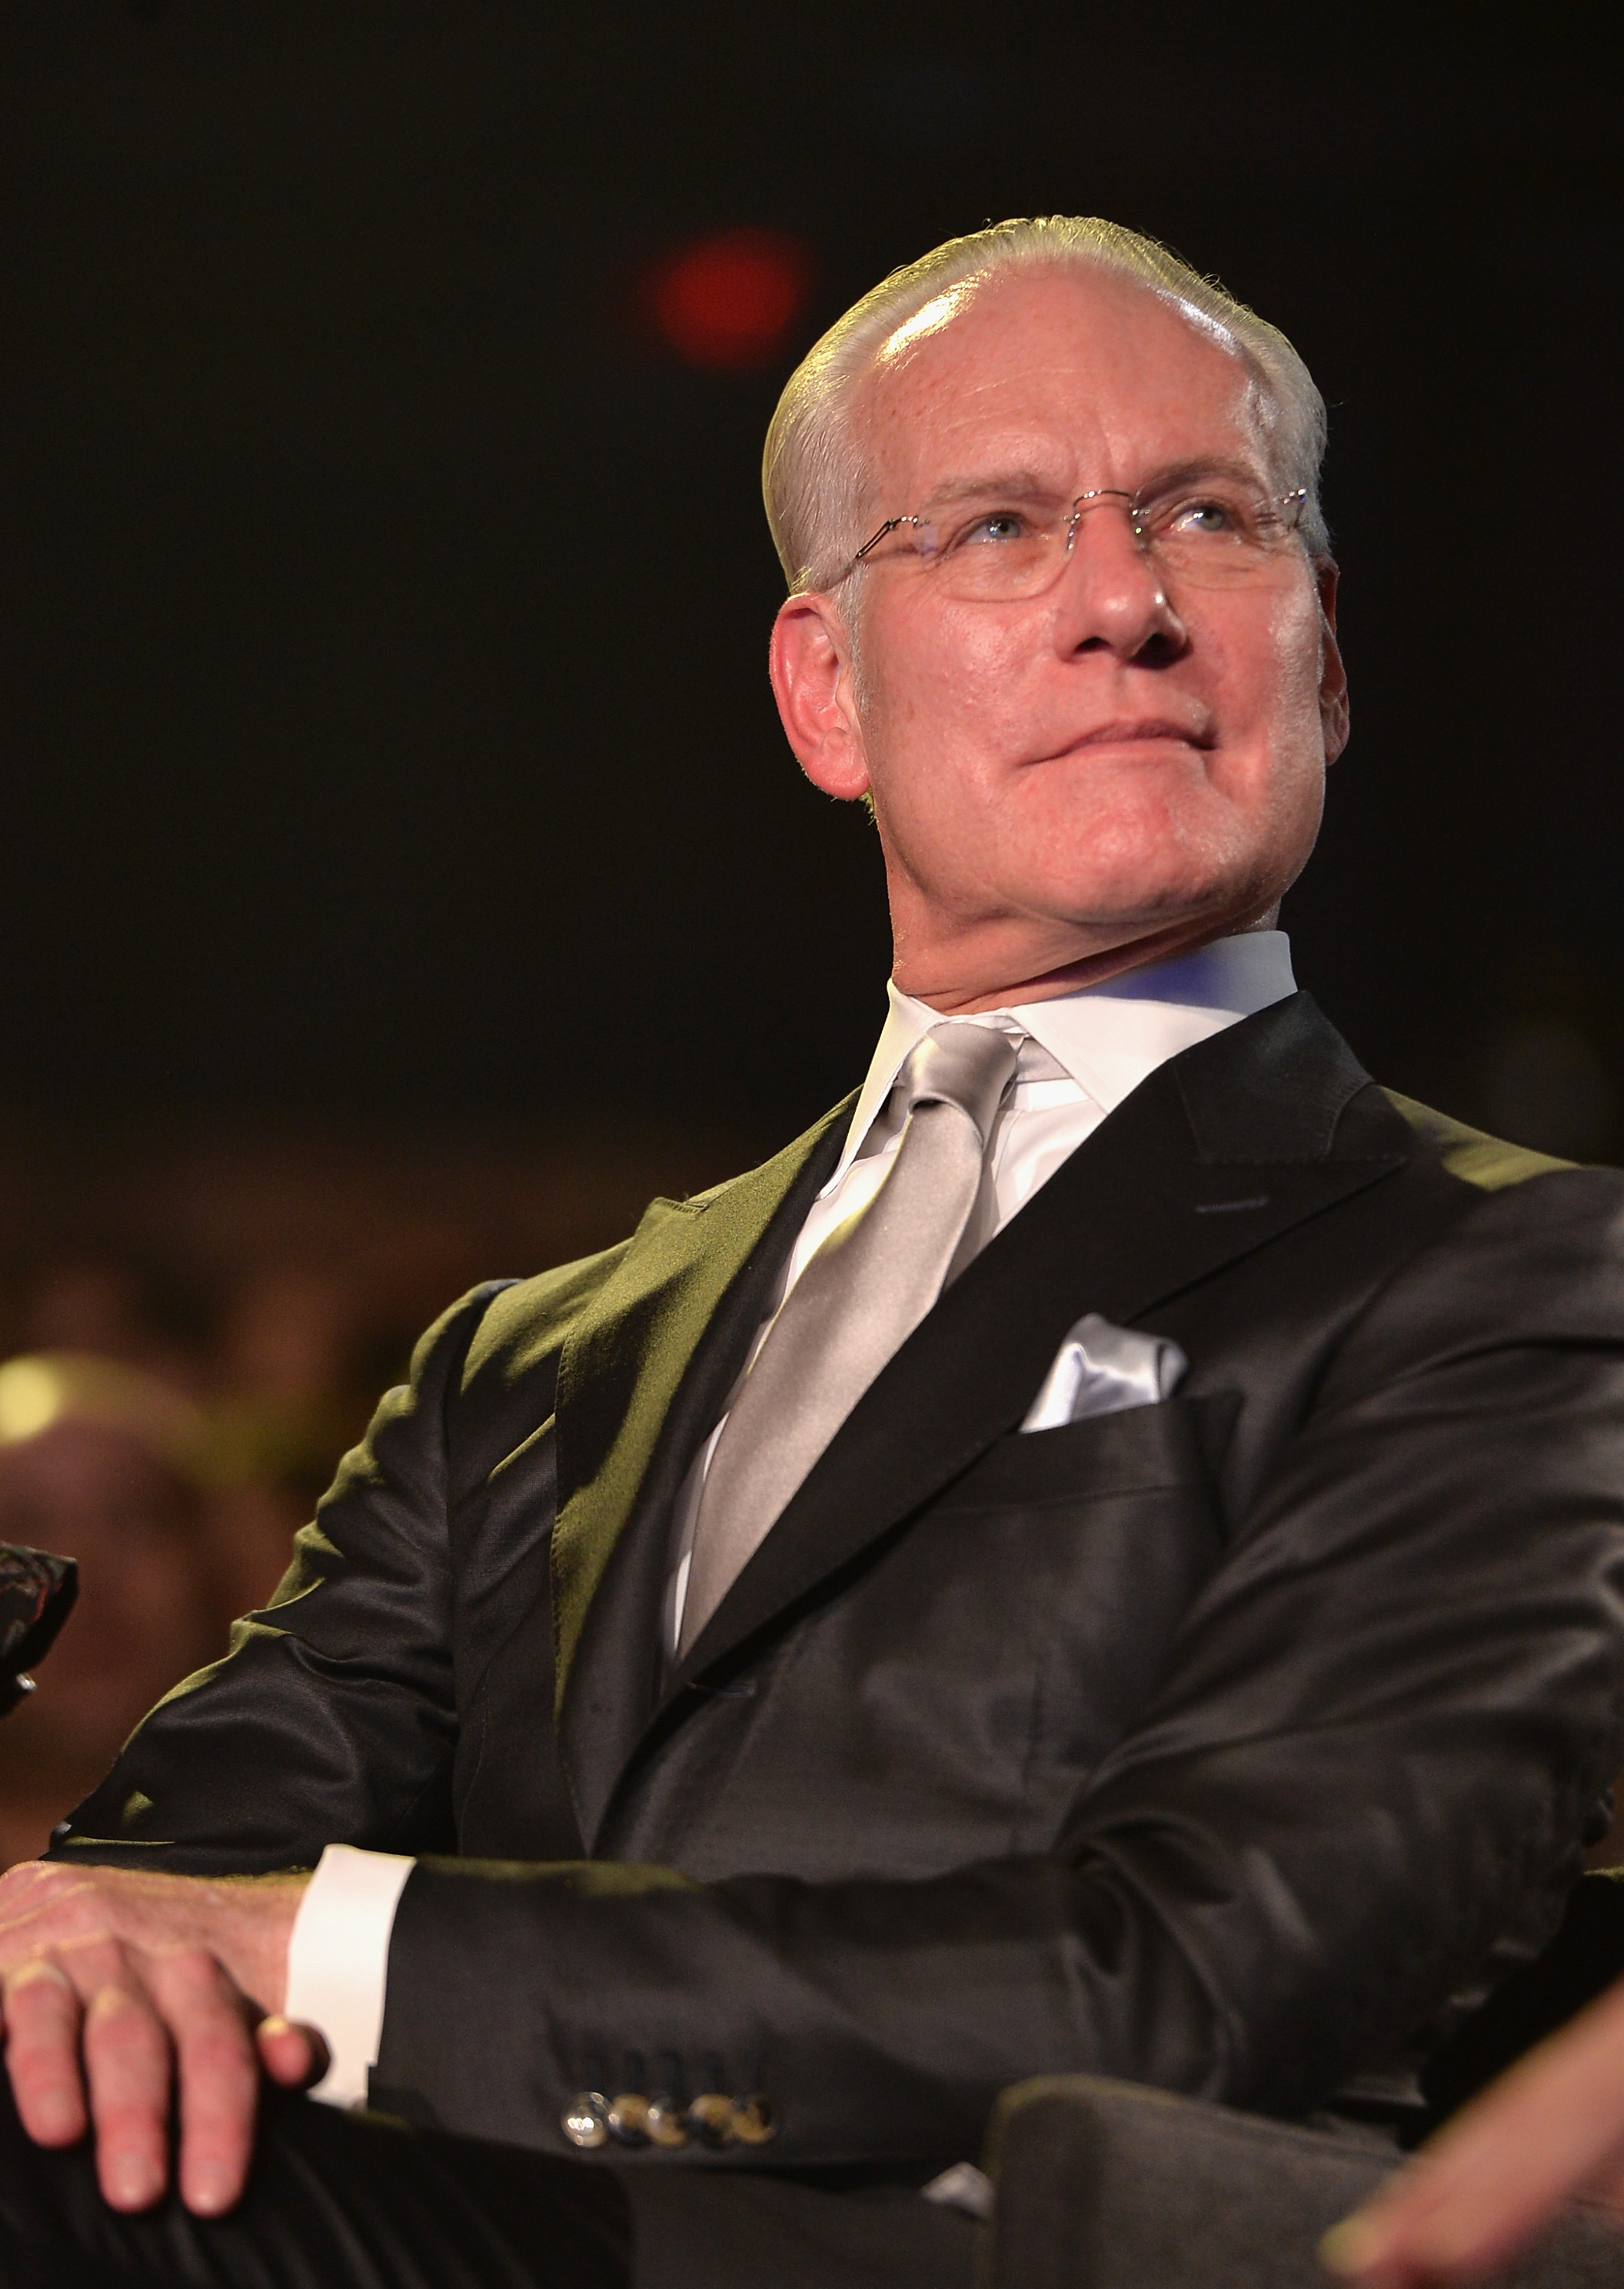 Tim Gunn: On And Off The Runway, 'Life Is A Big Collaboration'